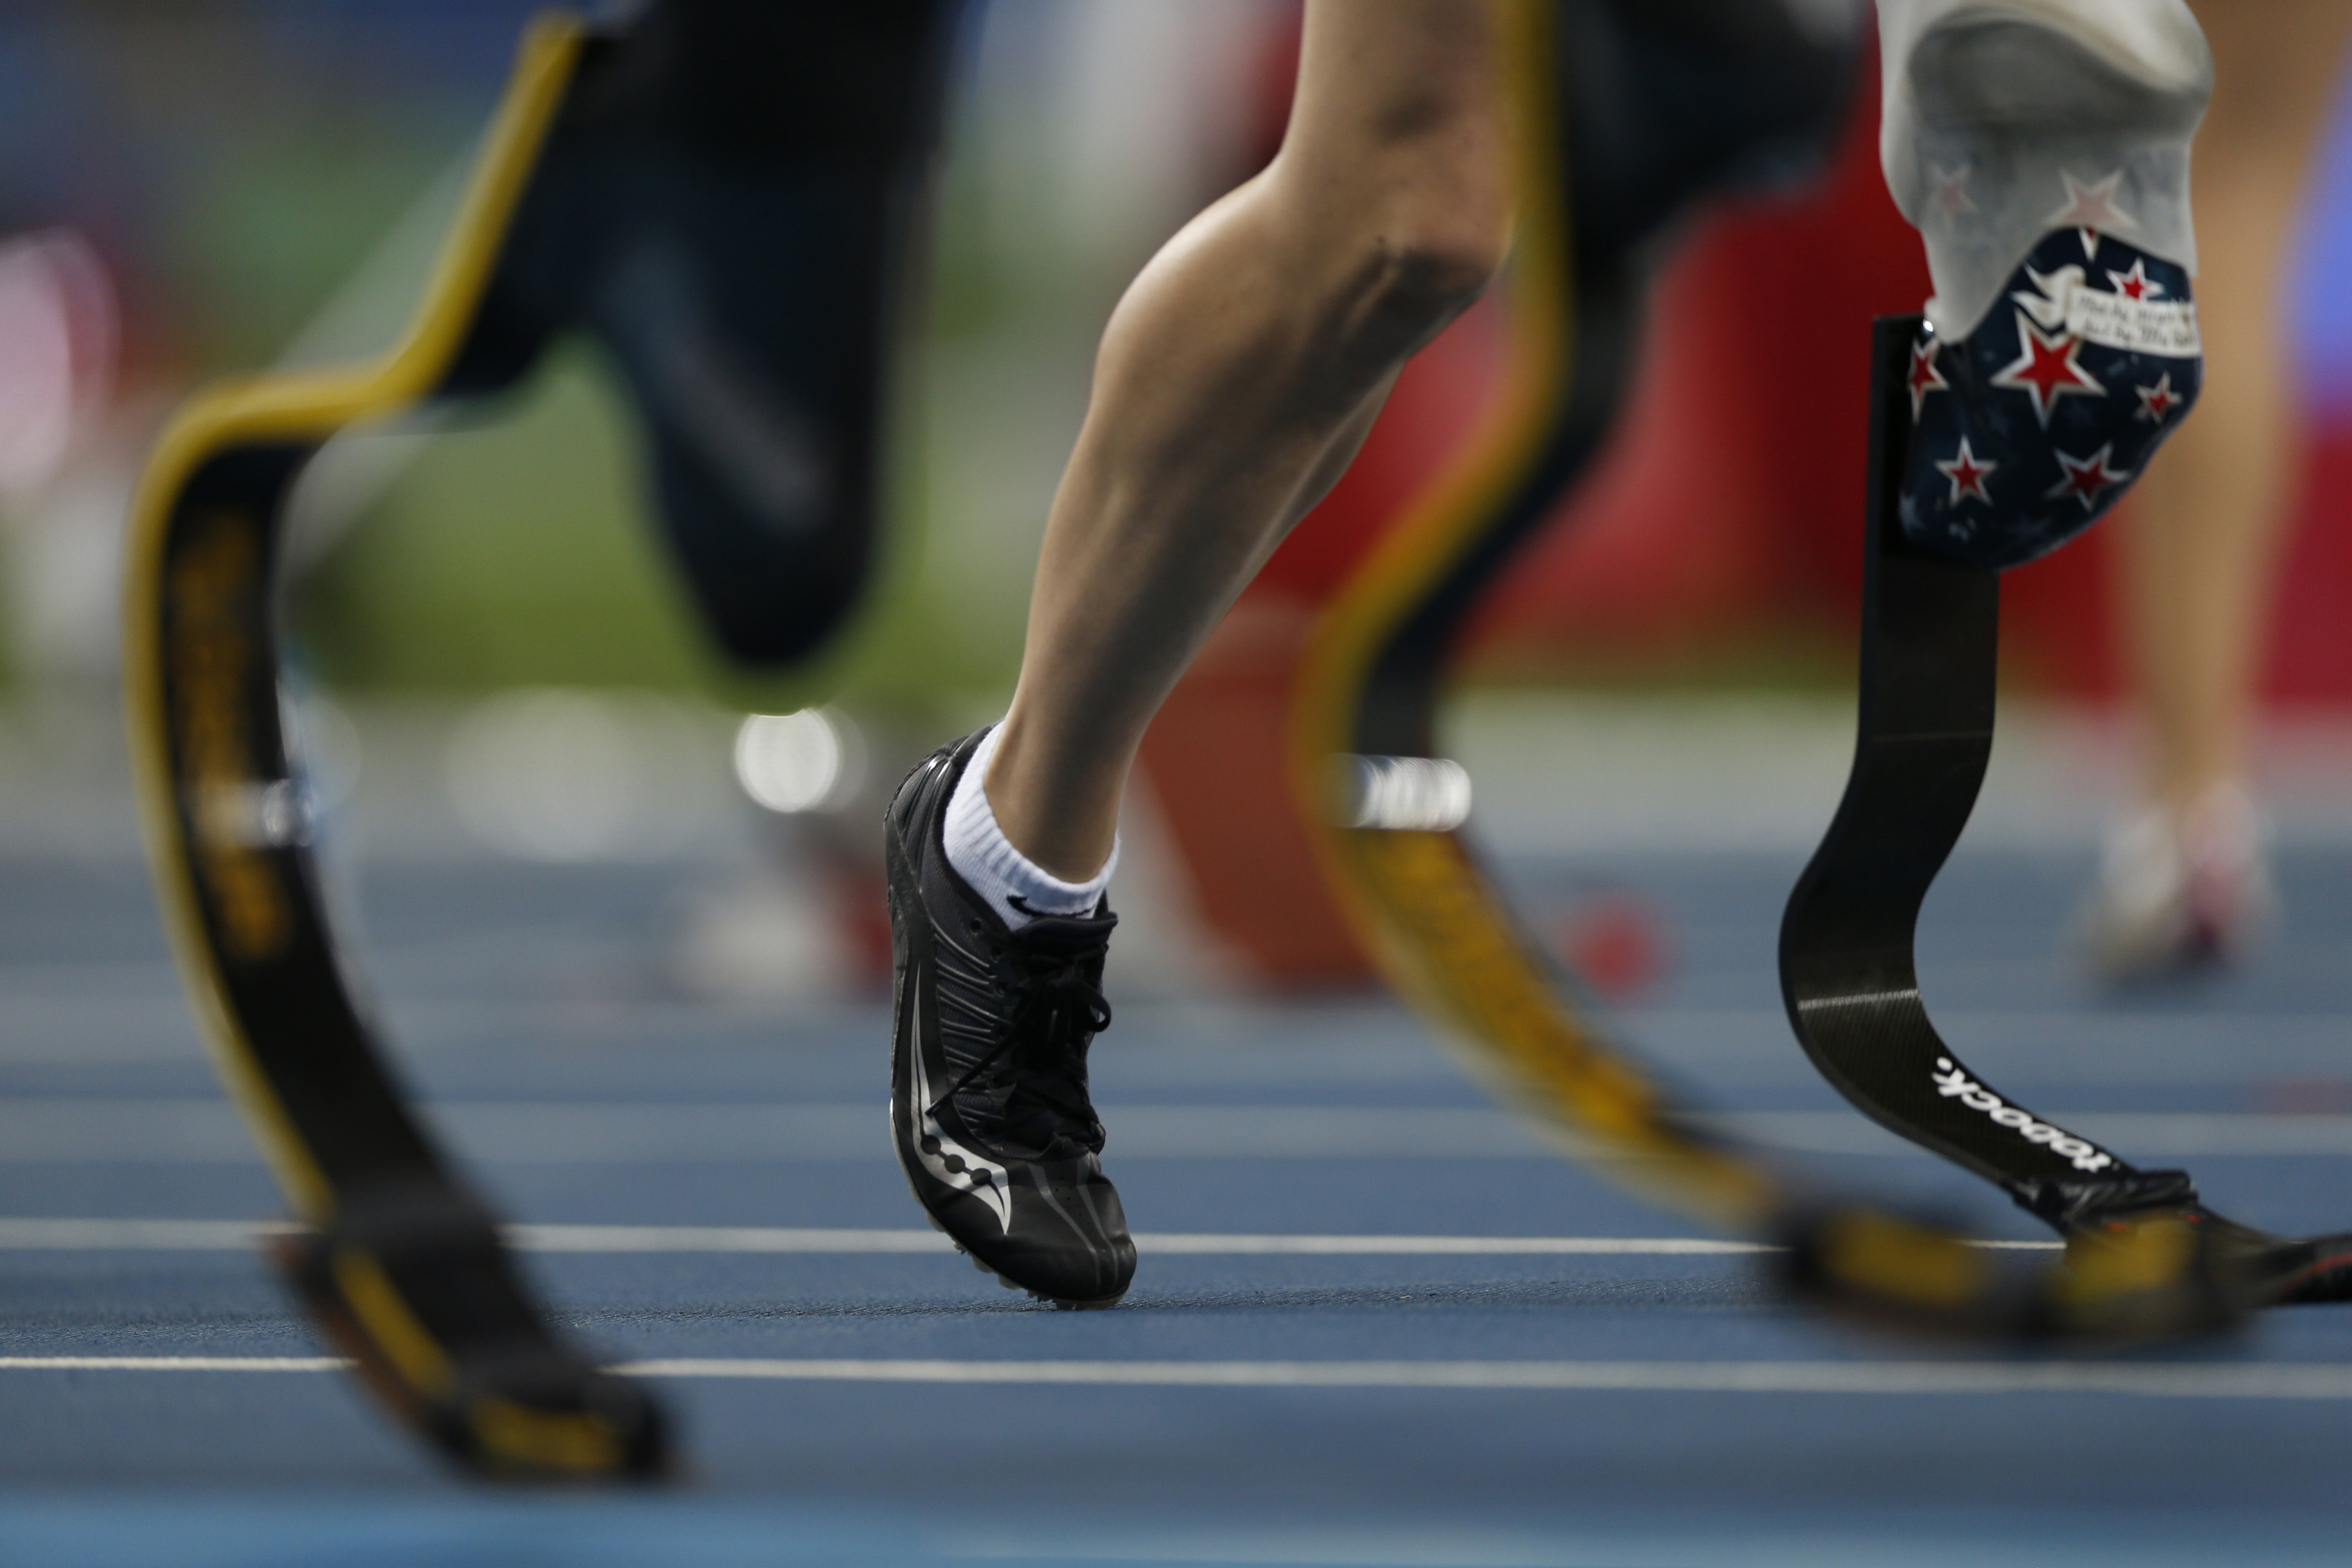 In this Monday, Sept. 12, 2016 photo, athletes compete in the women's 400-meter T44 final athletics event of the Paralympic Games in Rio de Janeiro, Brazil. The games needed a bailout from Brazil's government of almost $80 million to make it to the starti